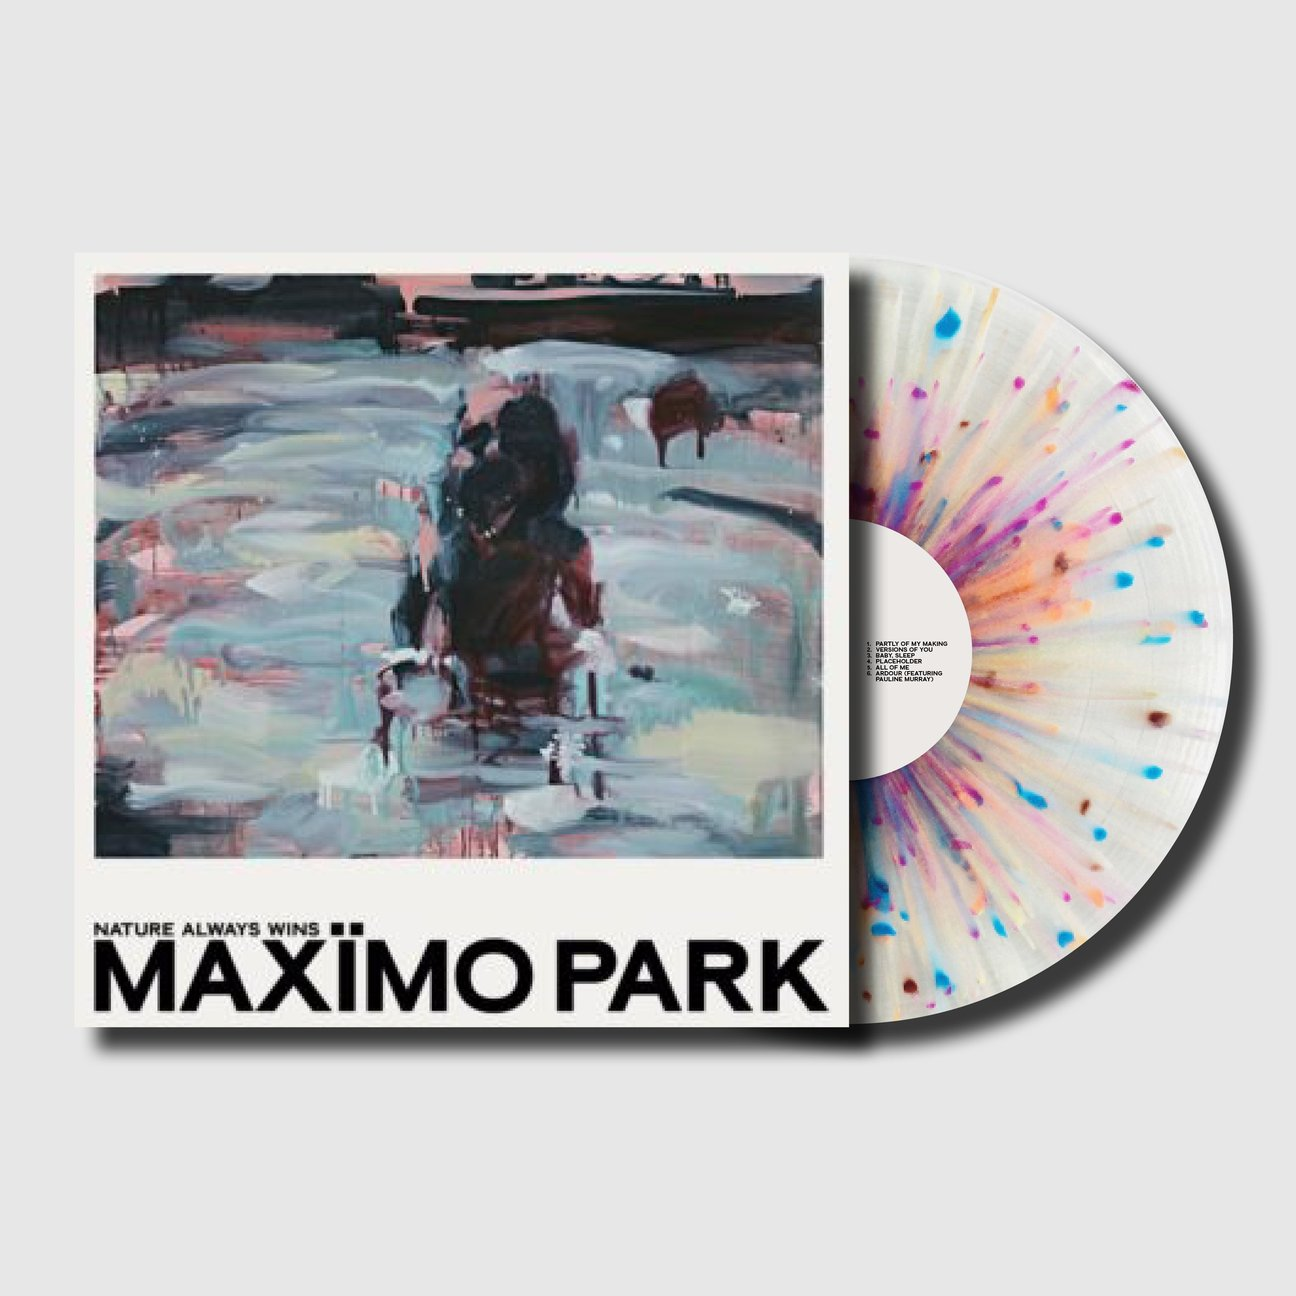 Maximo Park - Nature Always Wins - BROKEN 8 RECORDS